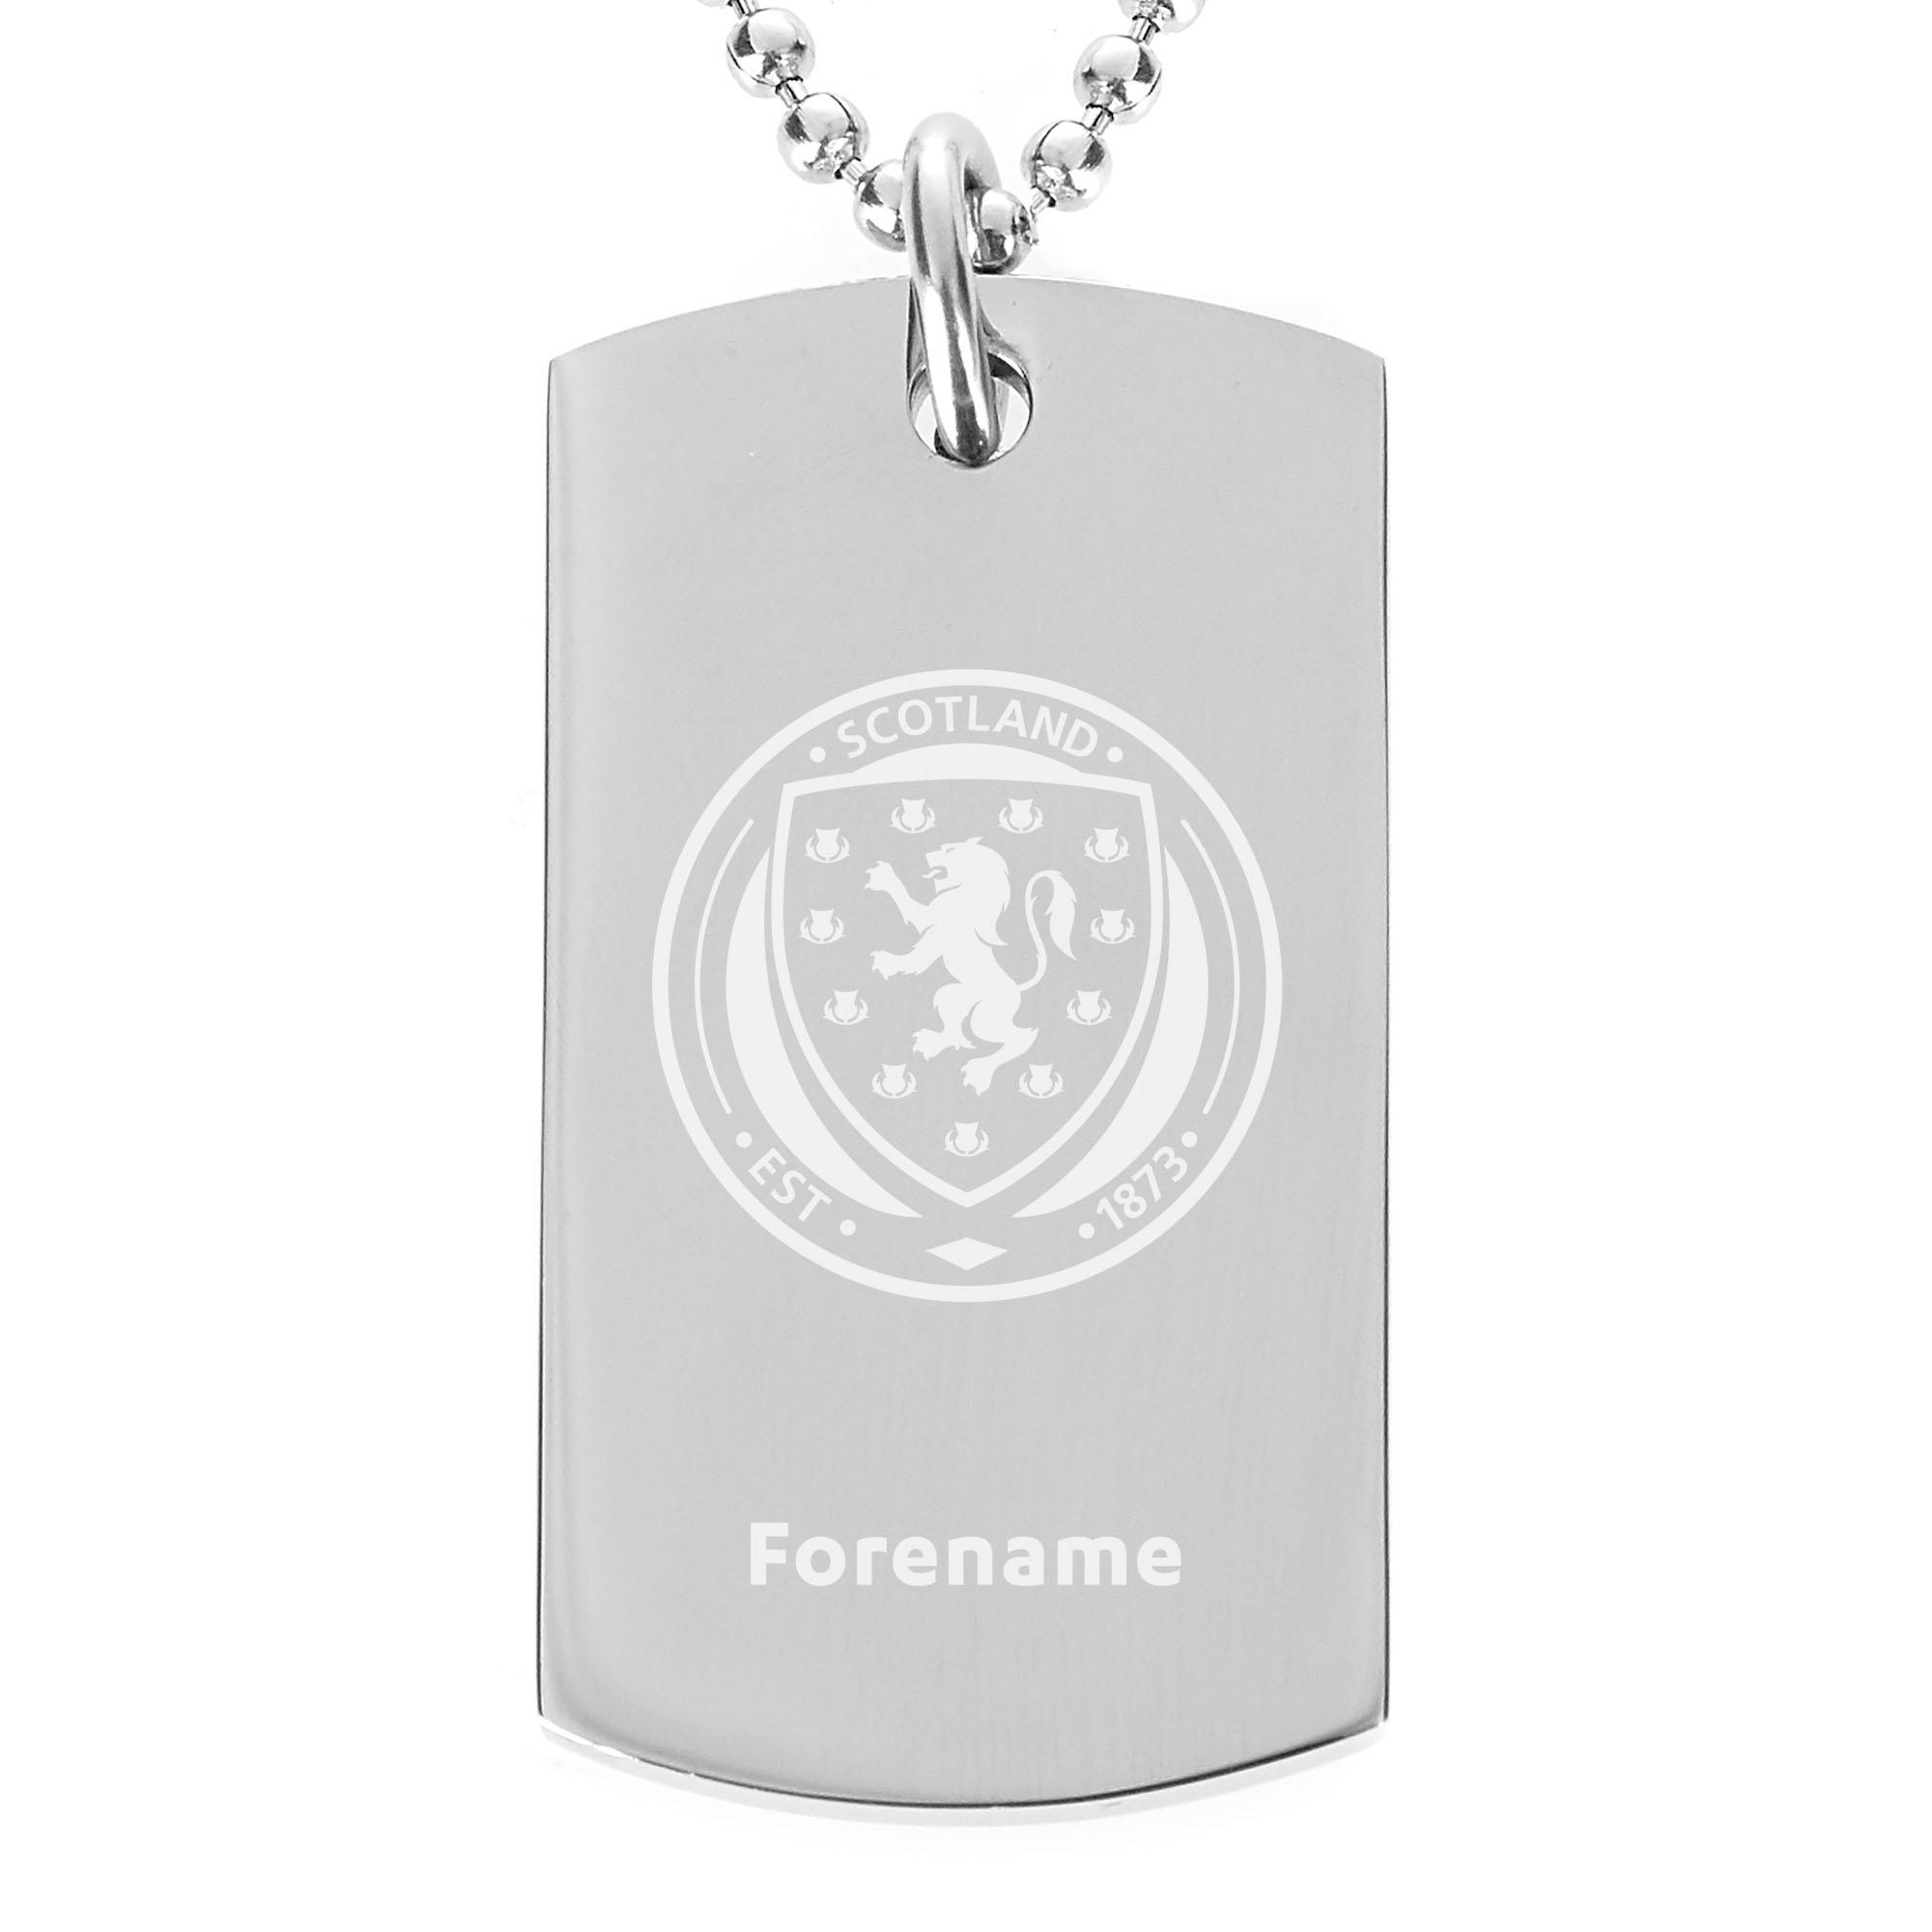 Scotland Crest Dog Tag Pendant